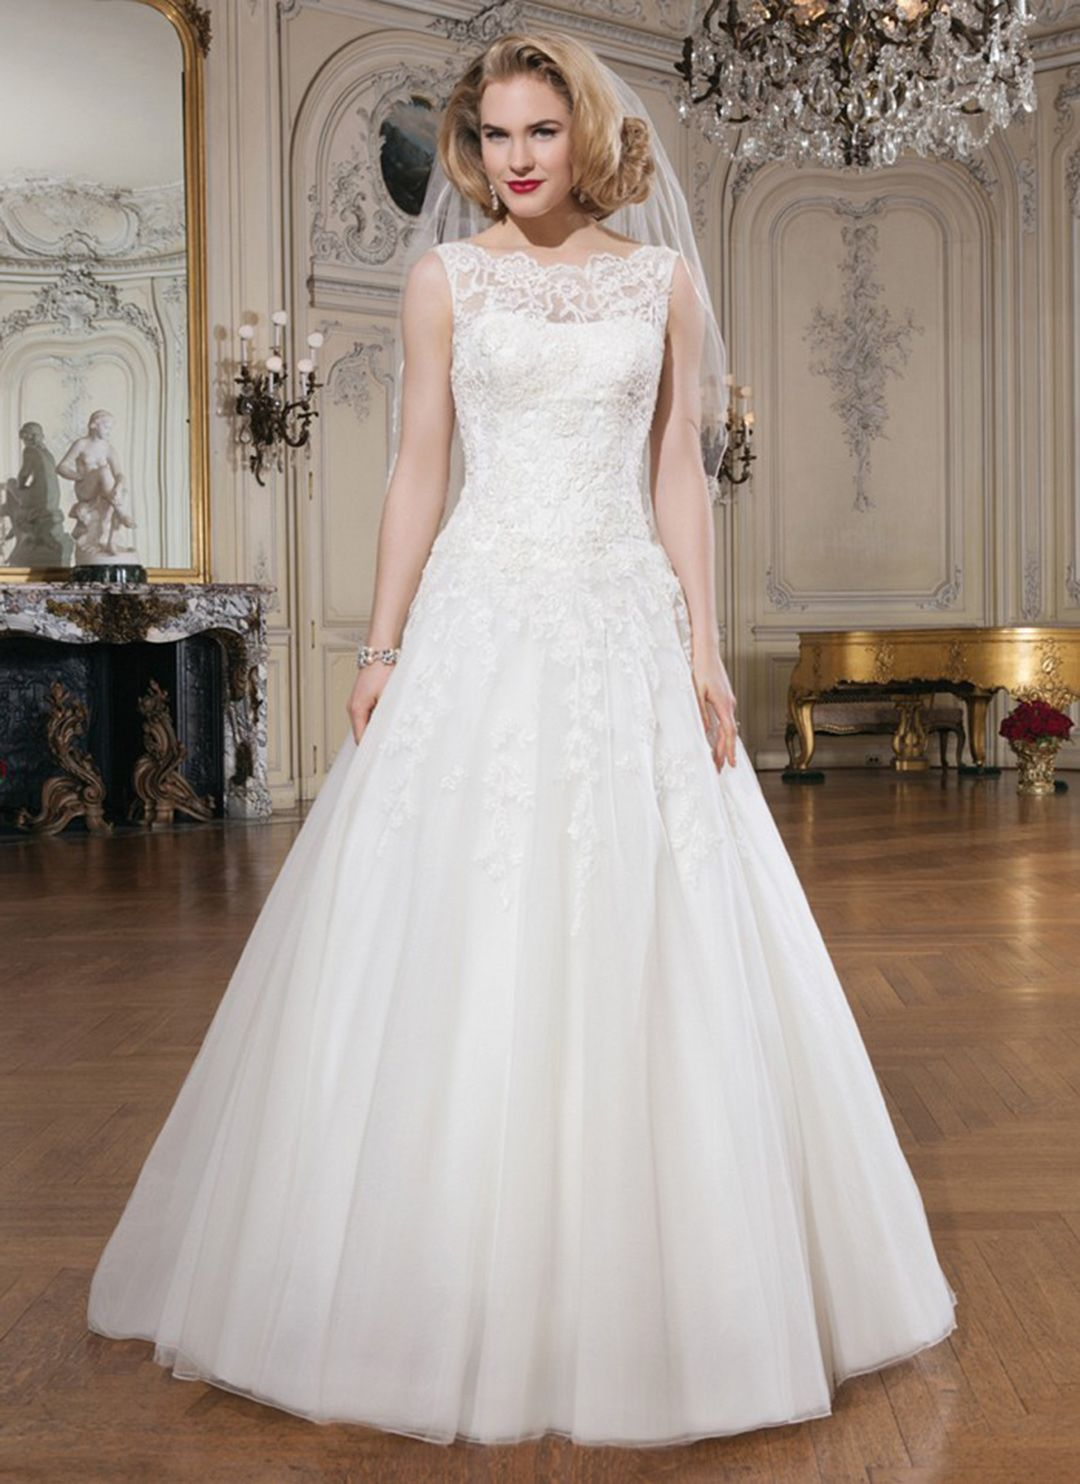 wedding dress by justin alexander bridal bits pinterest